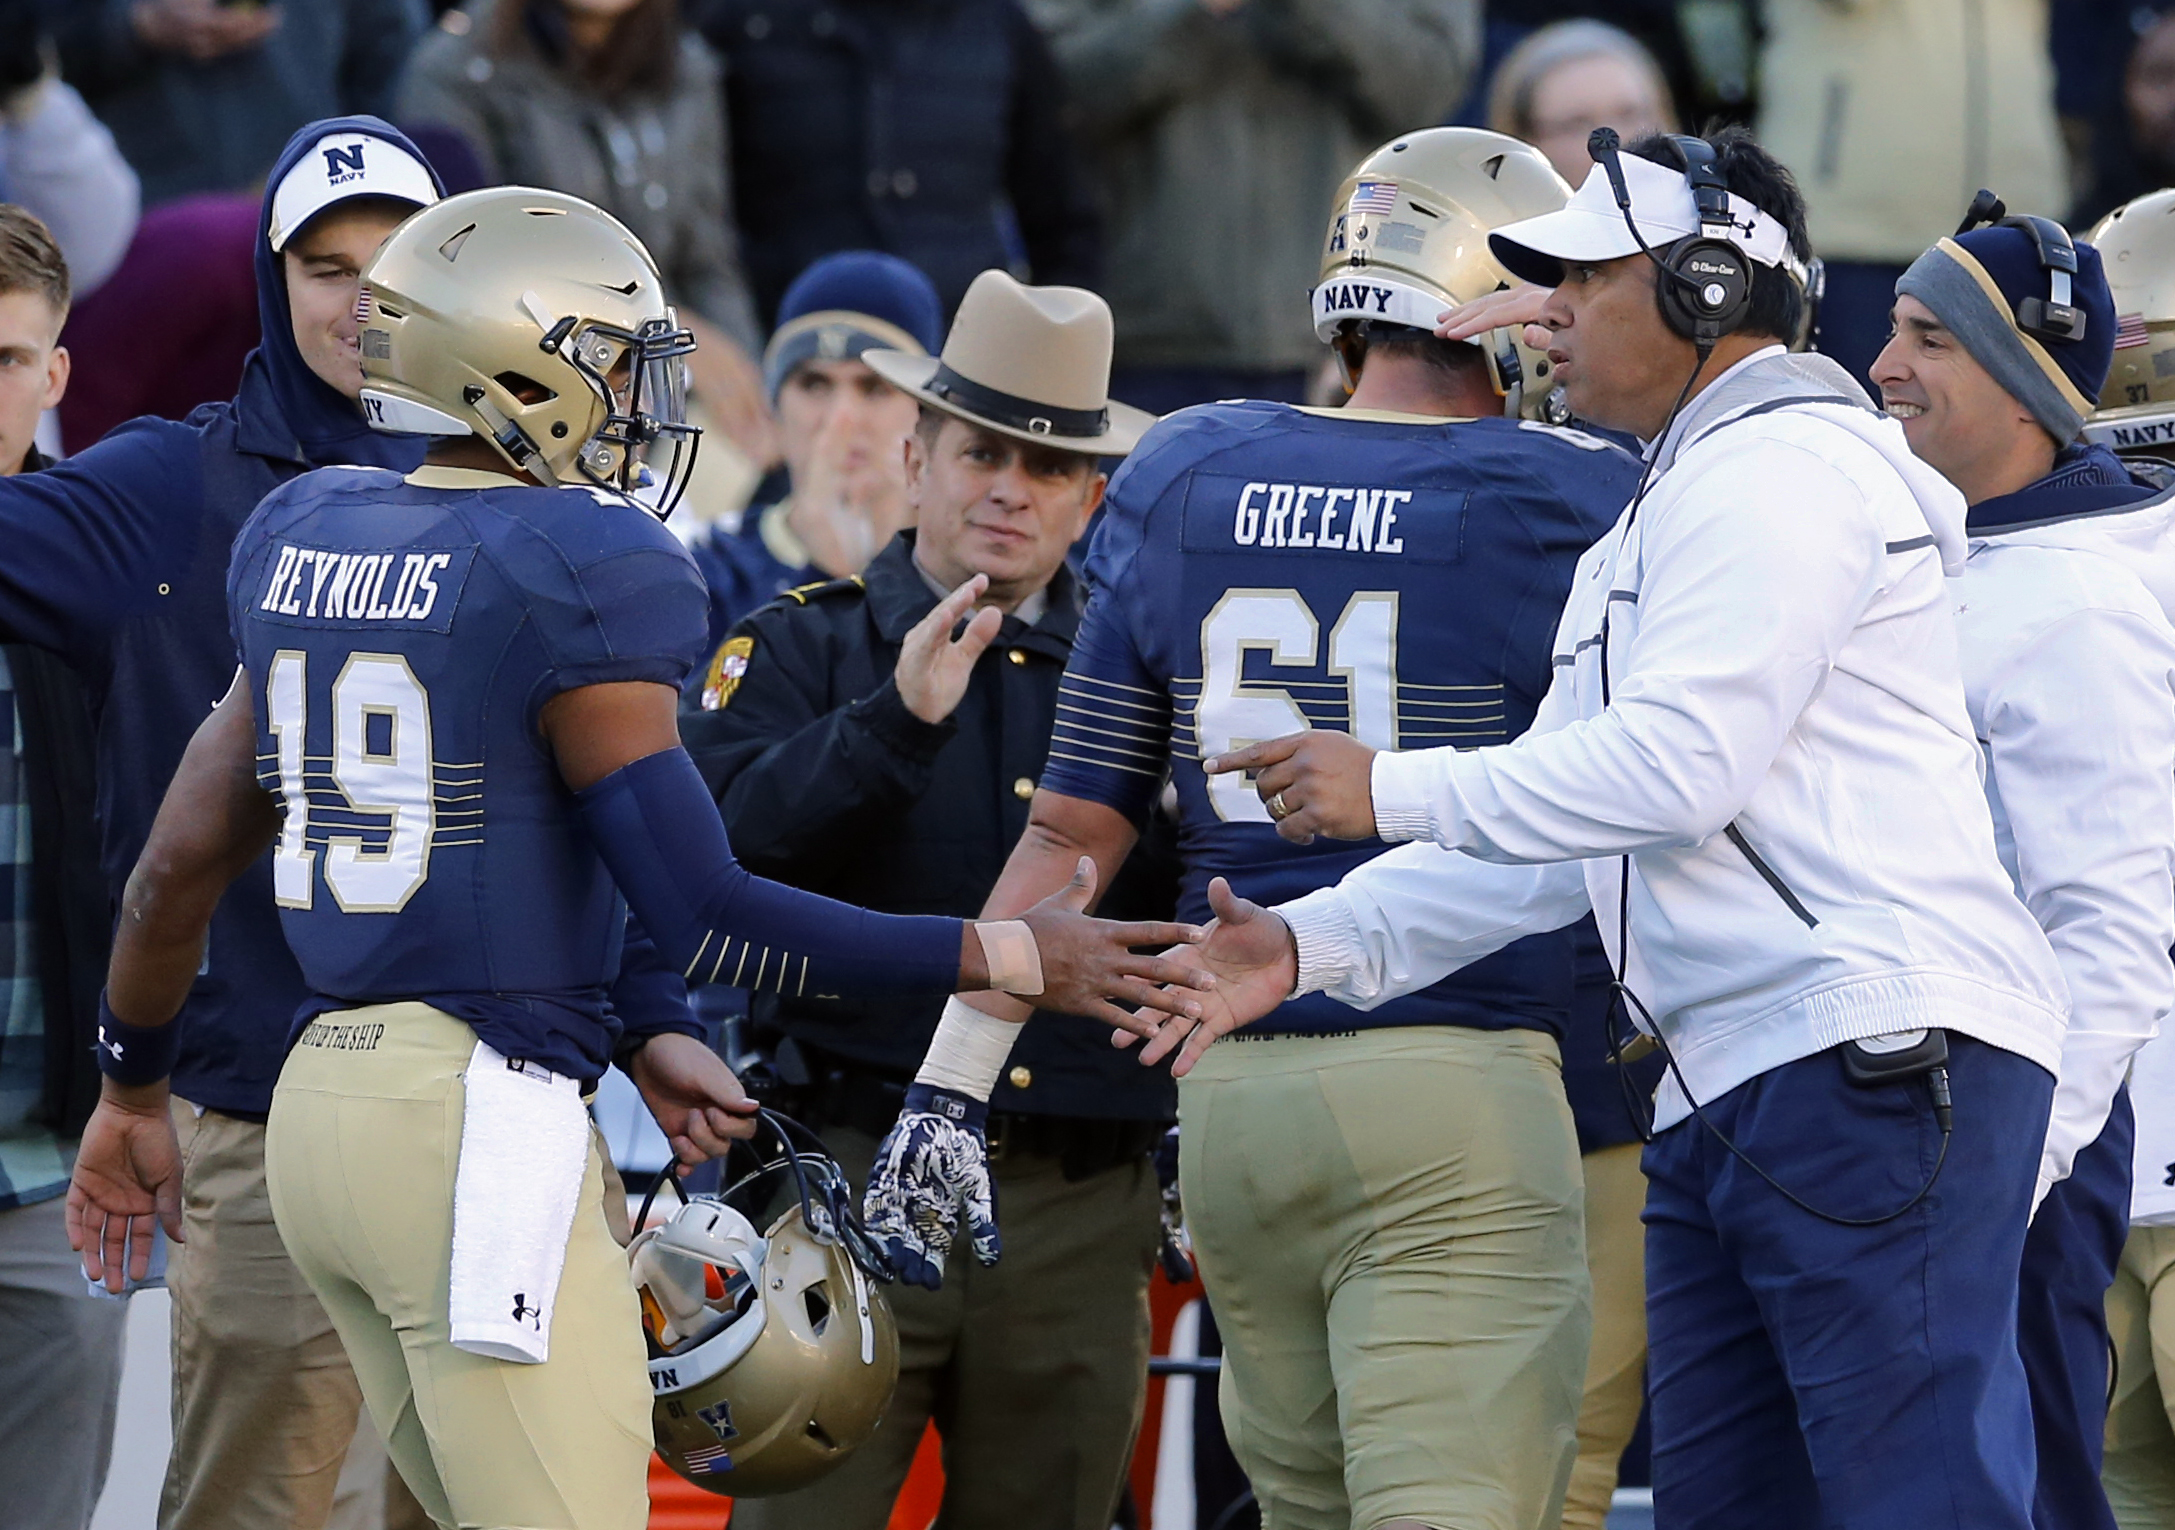 Navy head coach Ken Niumatalolo, right, greets quarterback Keenan Reynolds (19) after Reynolds scored a touchdown to break the NCAA all-time rushing touchdown record in the first half of an NCAA college football game against SMU, Saturday, Nov. 14, 2015,